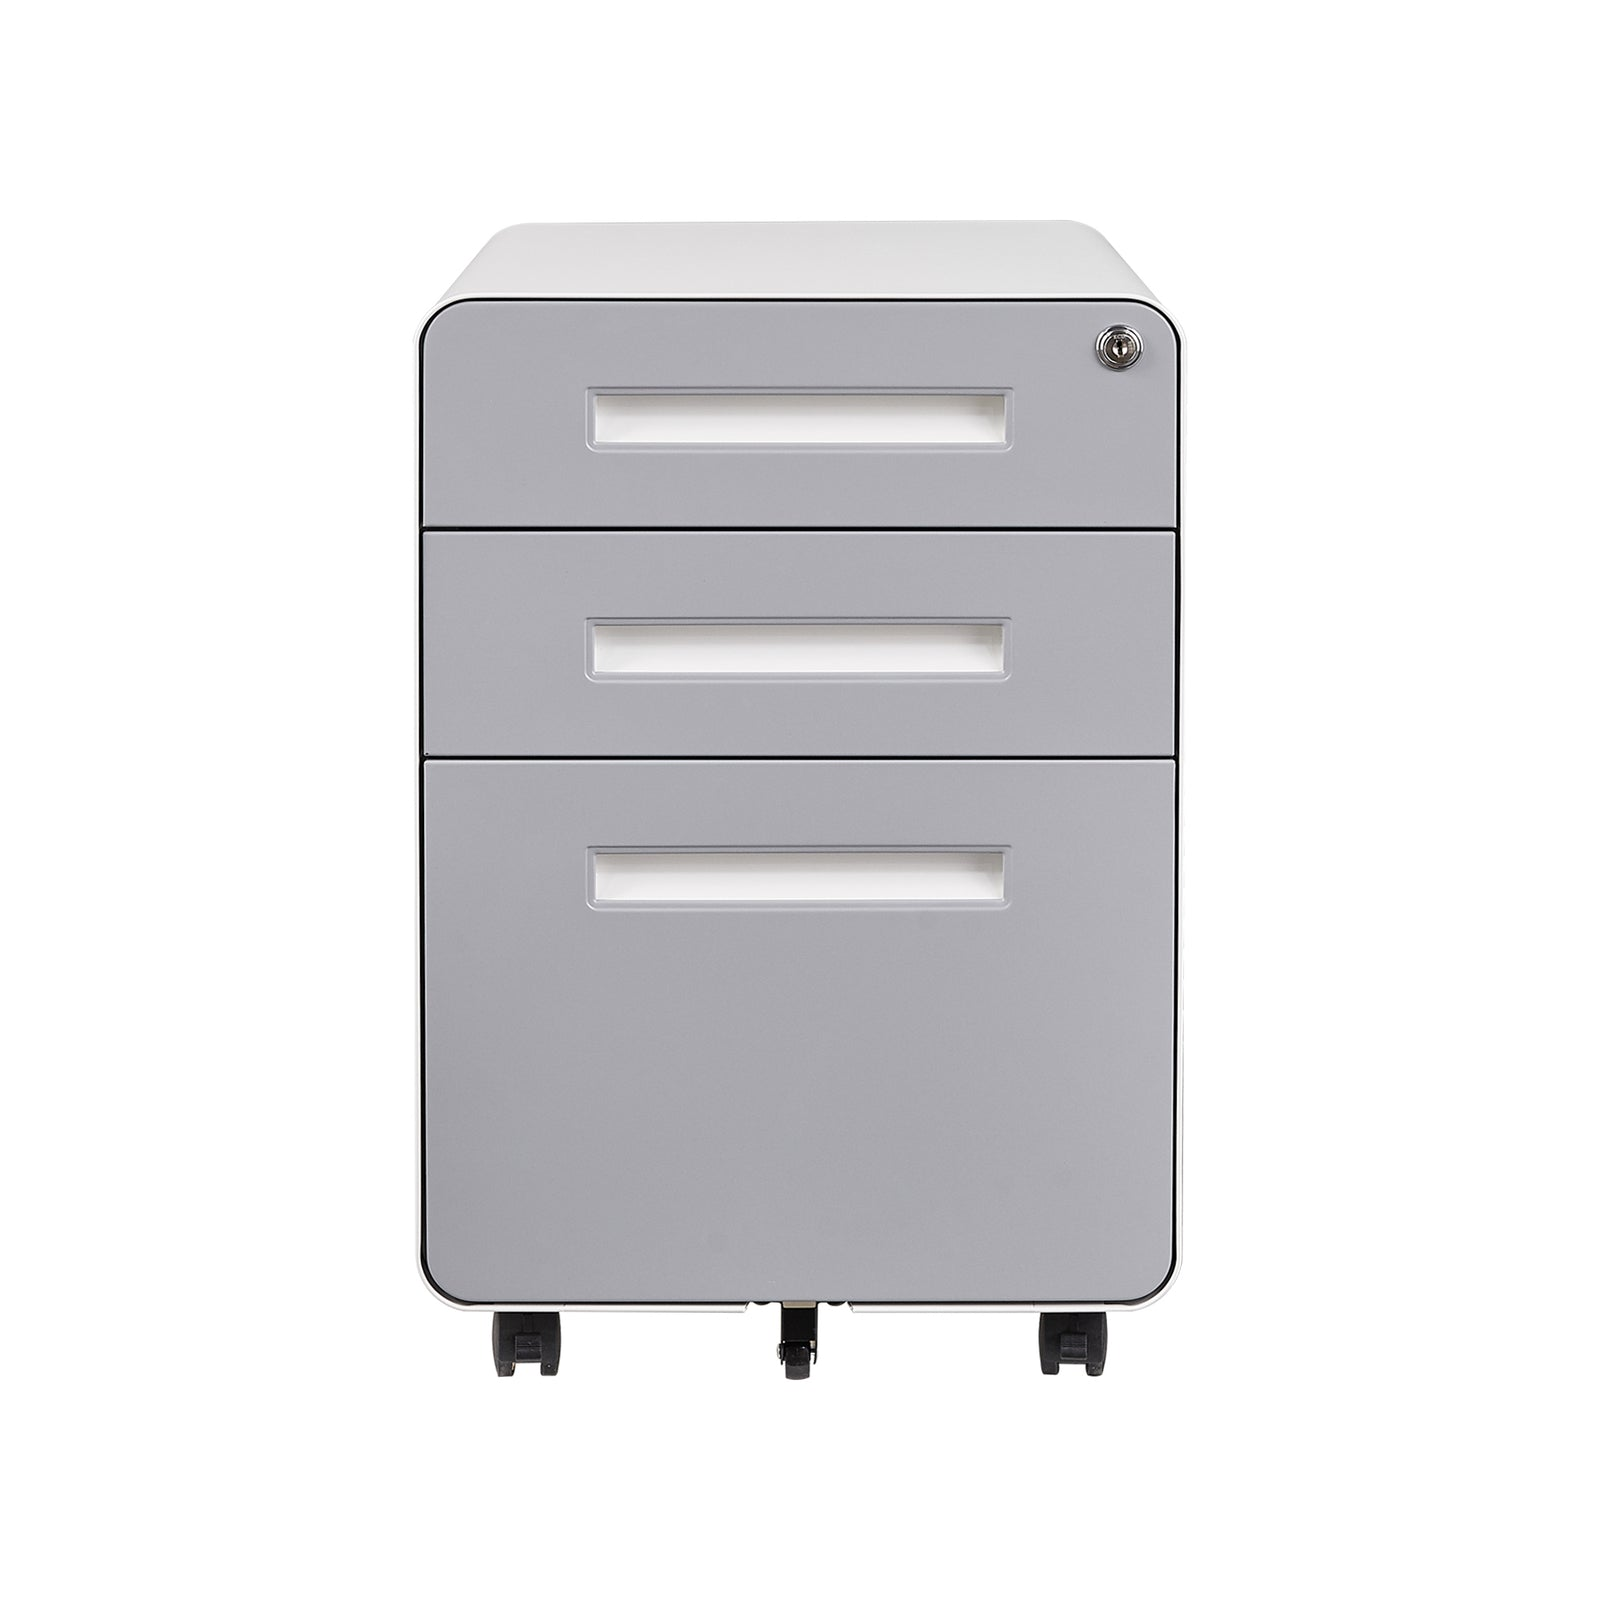 3 Drawer Mobile Pedestal File Cabinet Home Office Furniture - White